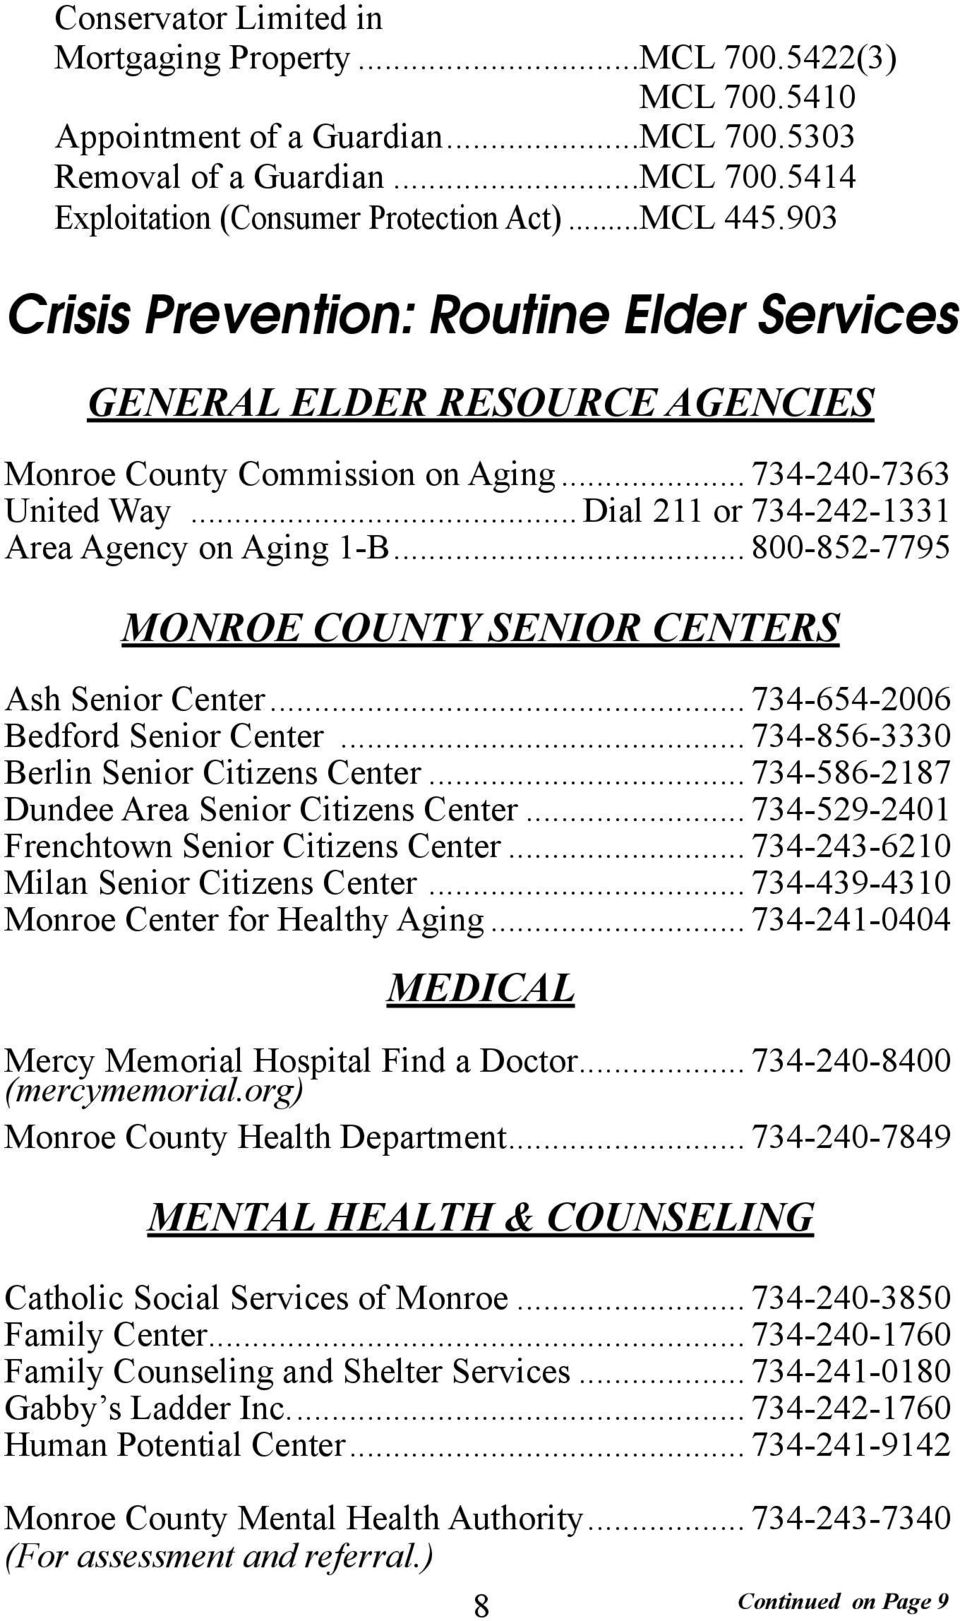 .. 800-852-7795 MONROE COUNTY SENIOR CENTERS Ash Senior Center... 734-654-2006 Bedford Senior Center... 734-856-3330 Berlin Senior Citizens Center... 734-586-2187 Dundee Area Senior Citizens Center.